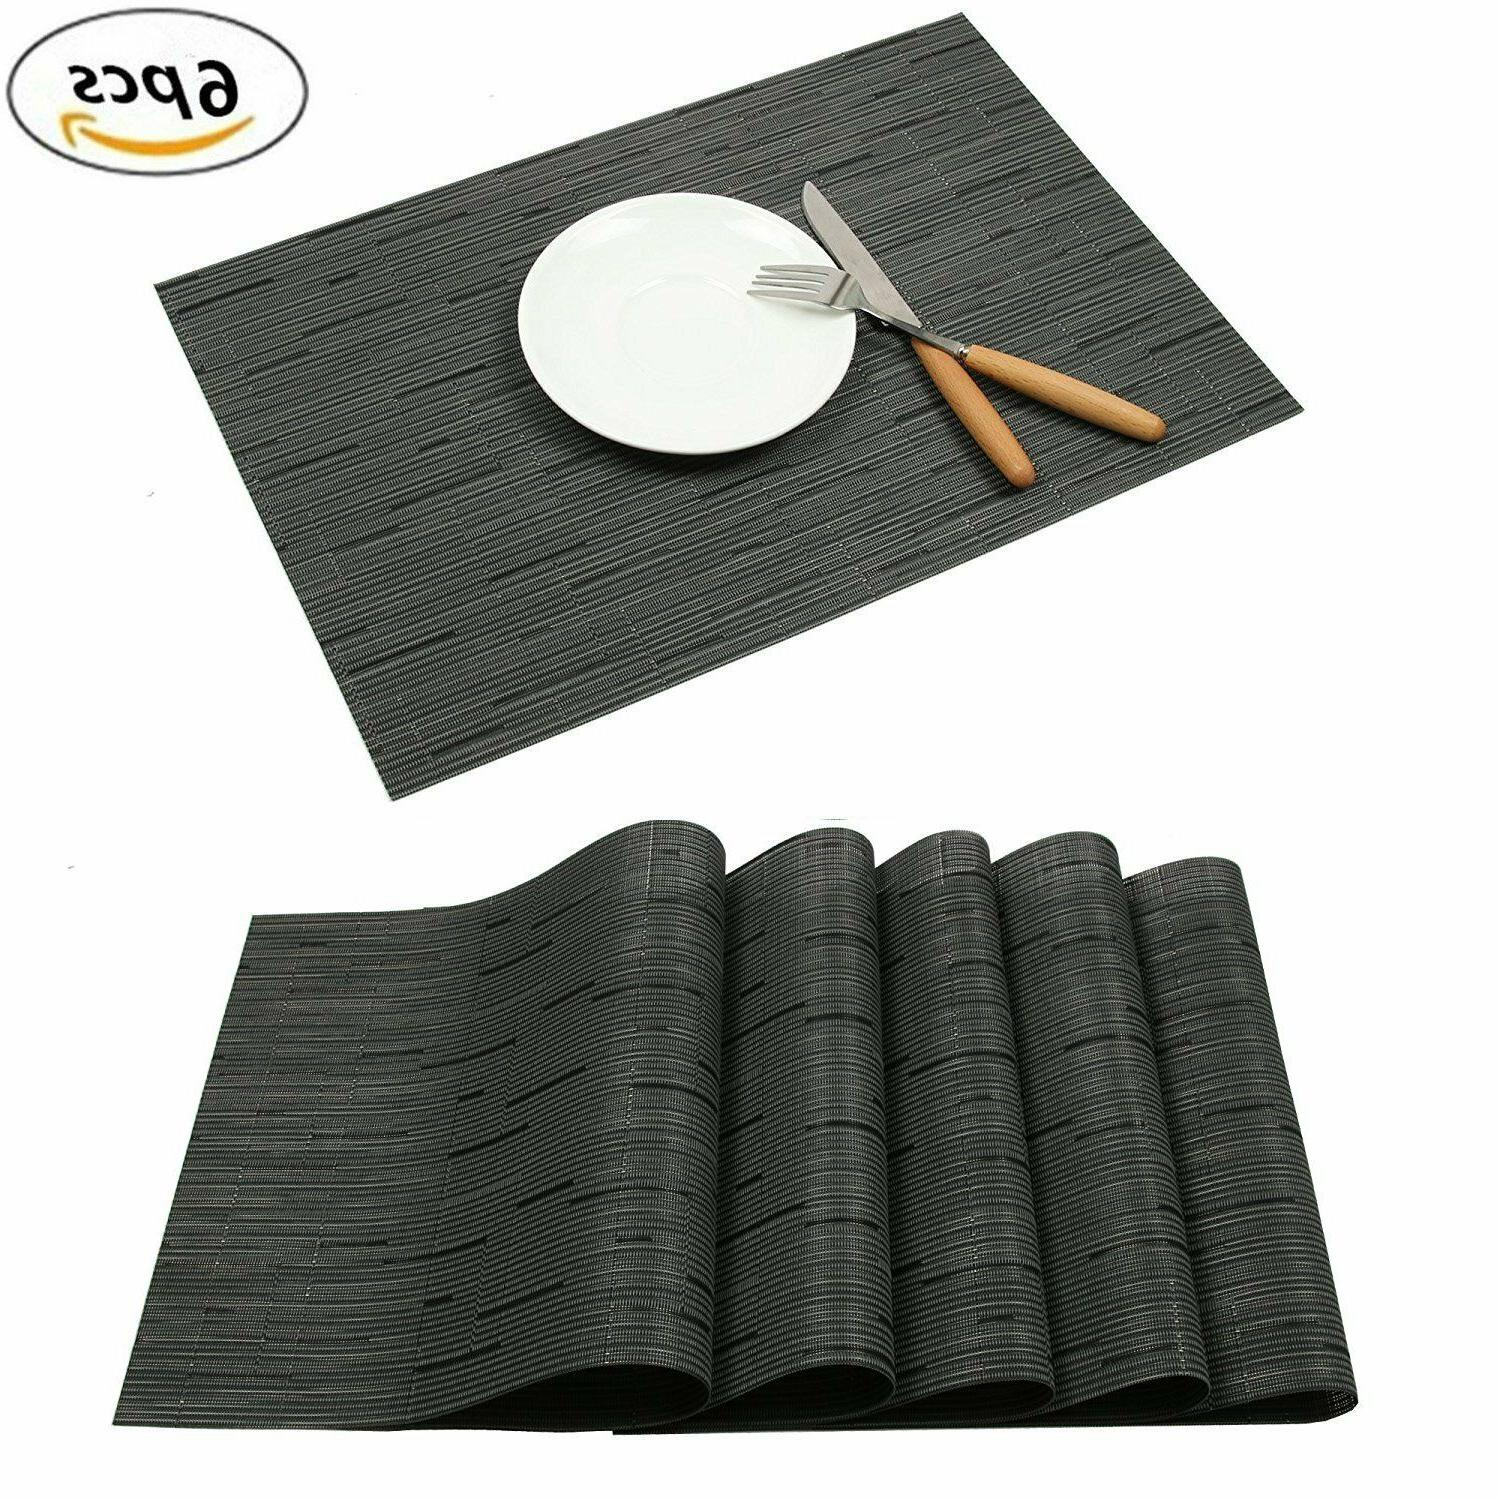 Elegant Placemats Table Vinyl Set Of 6 18""